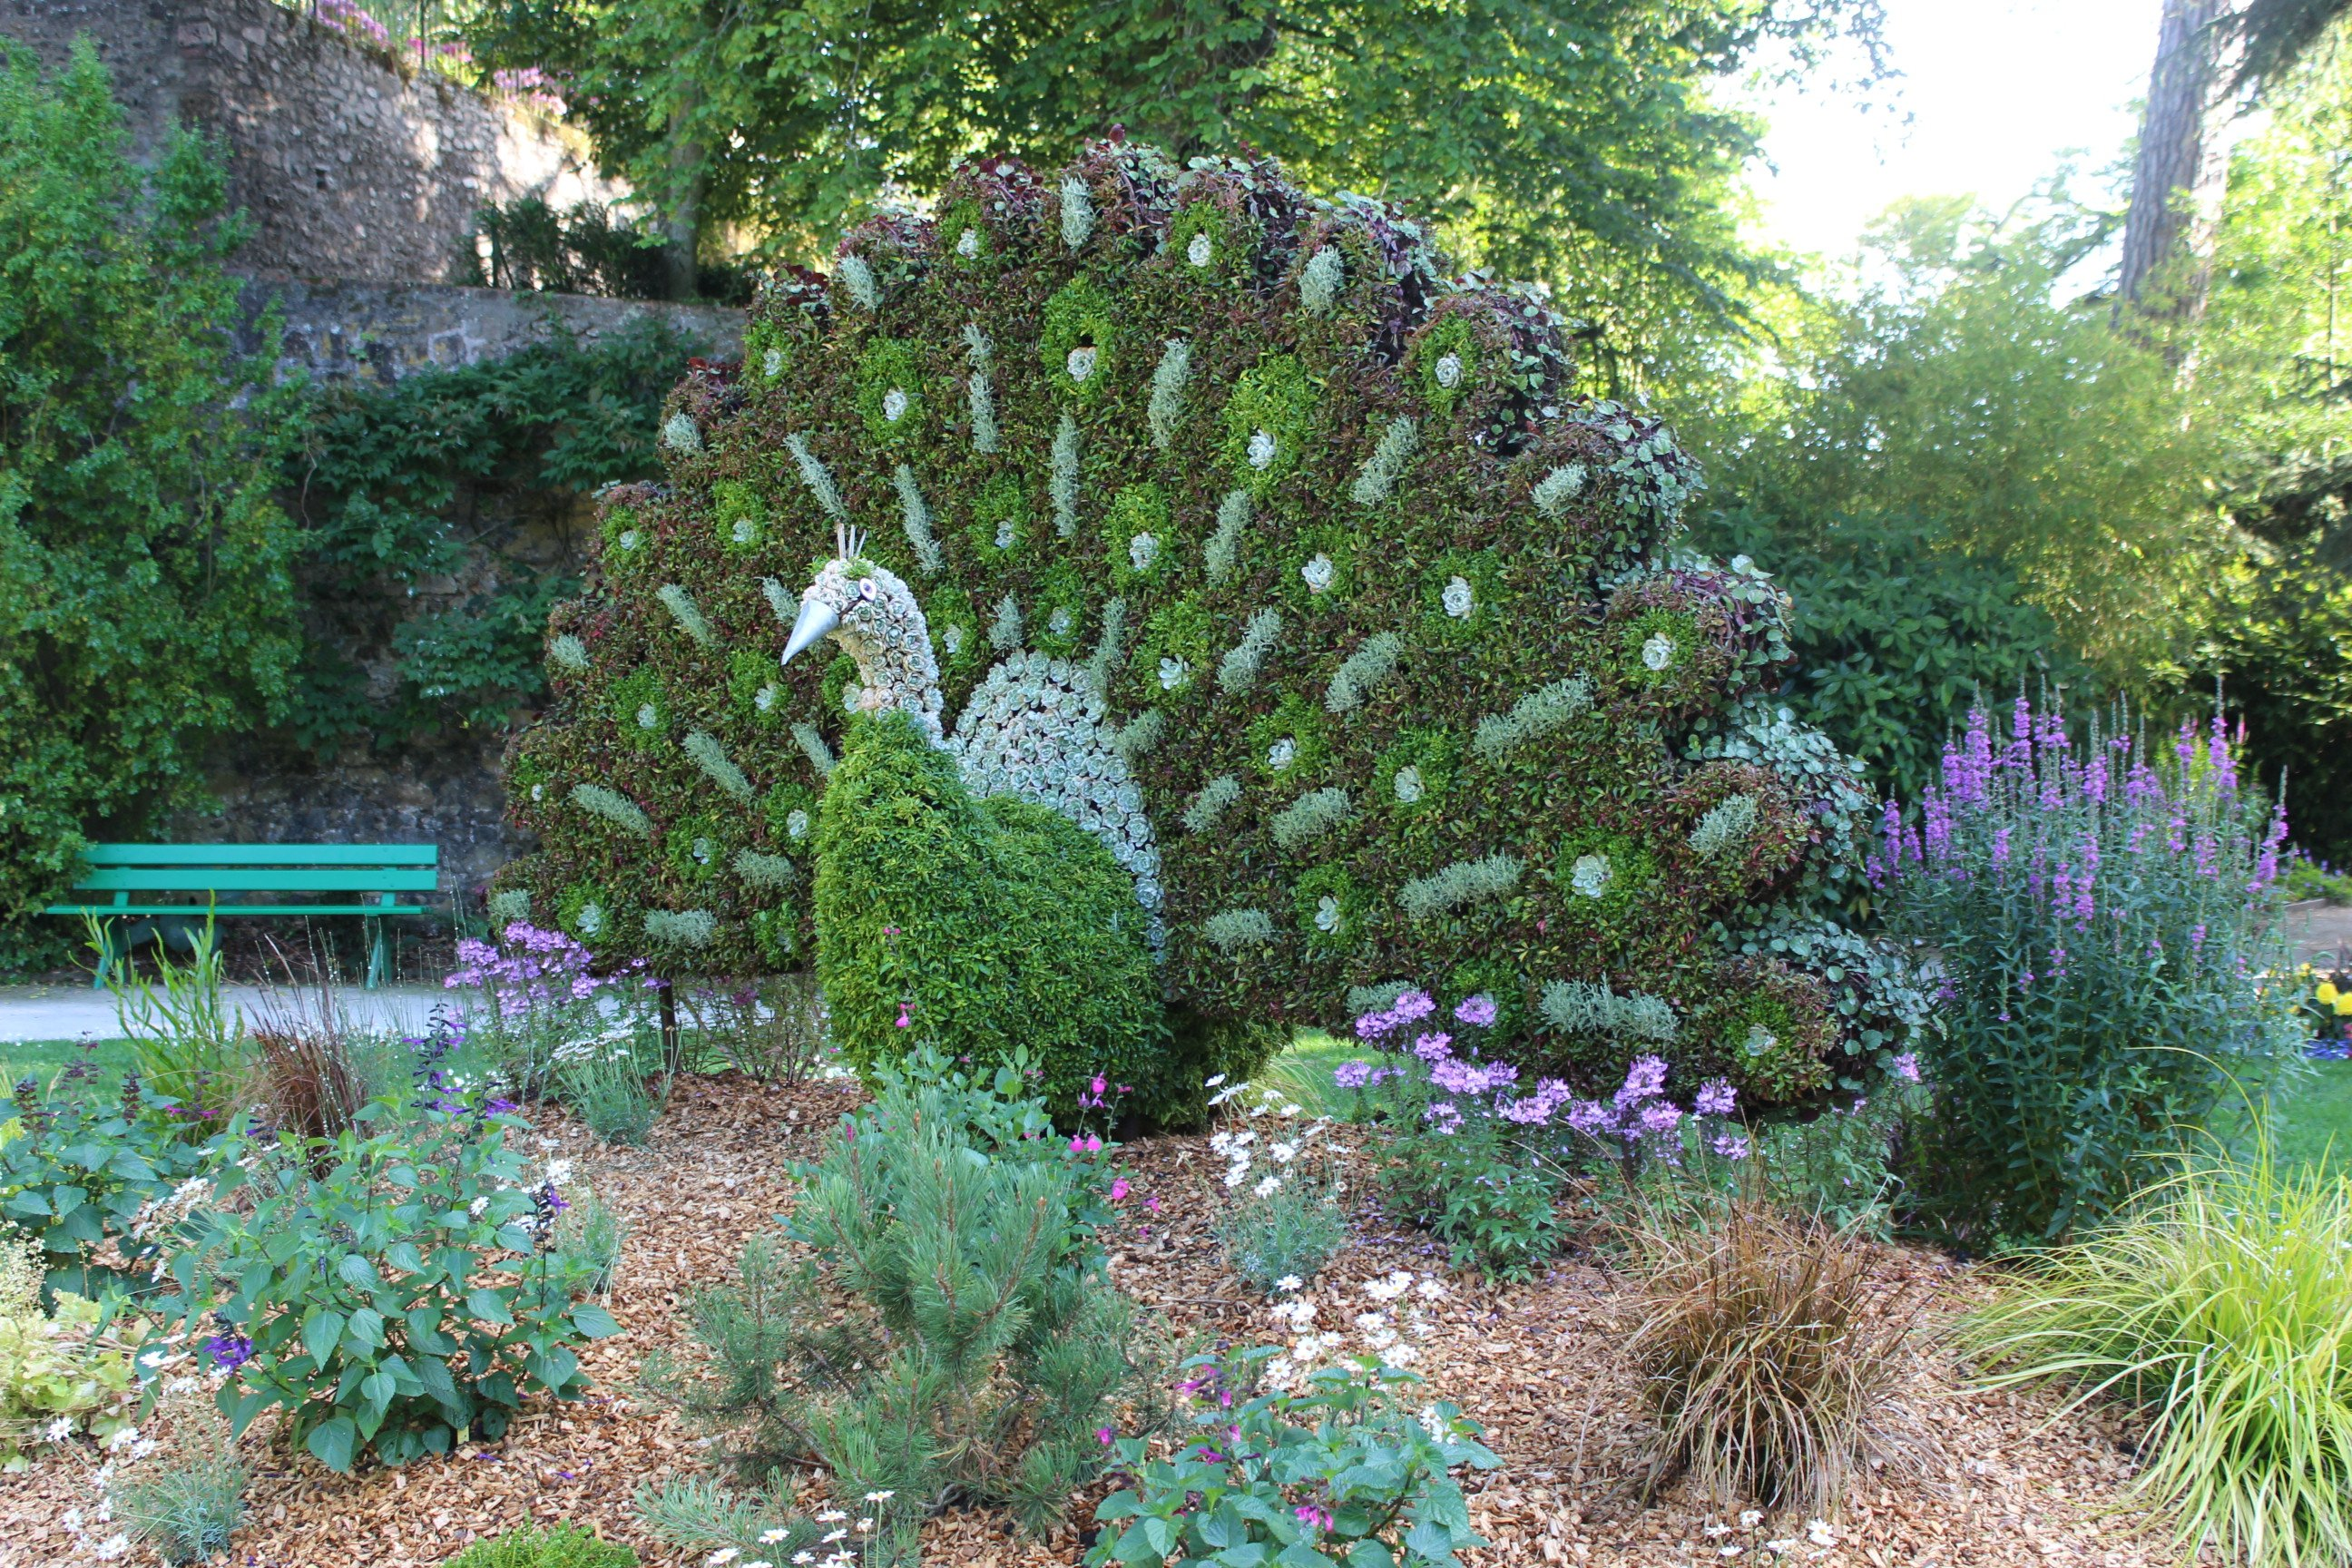 Garden in Coutances